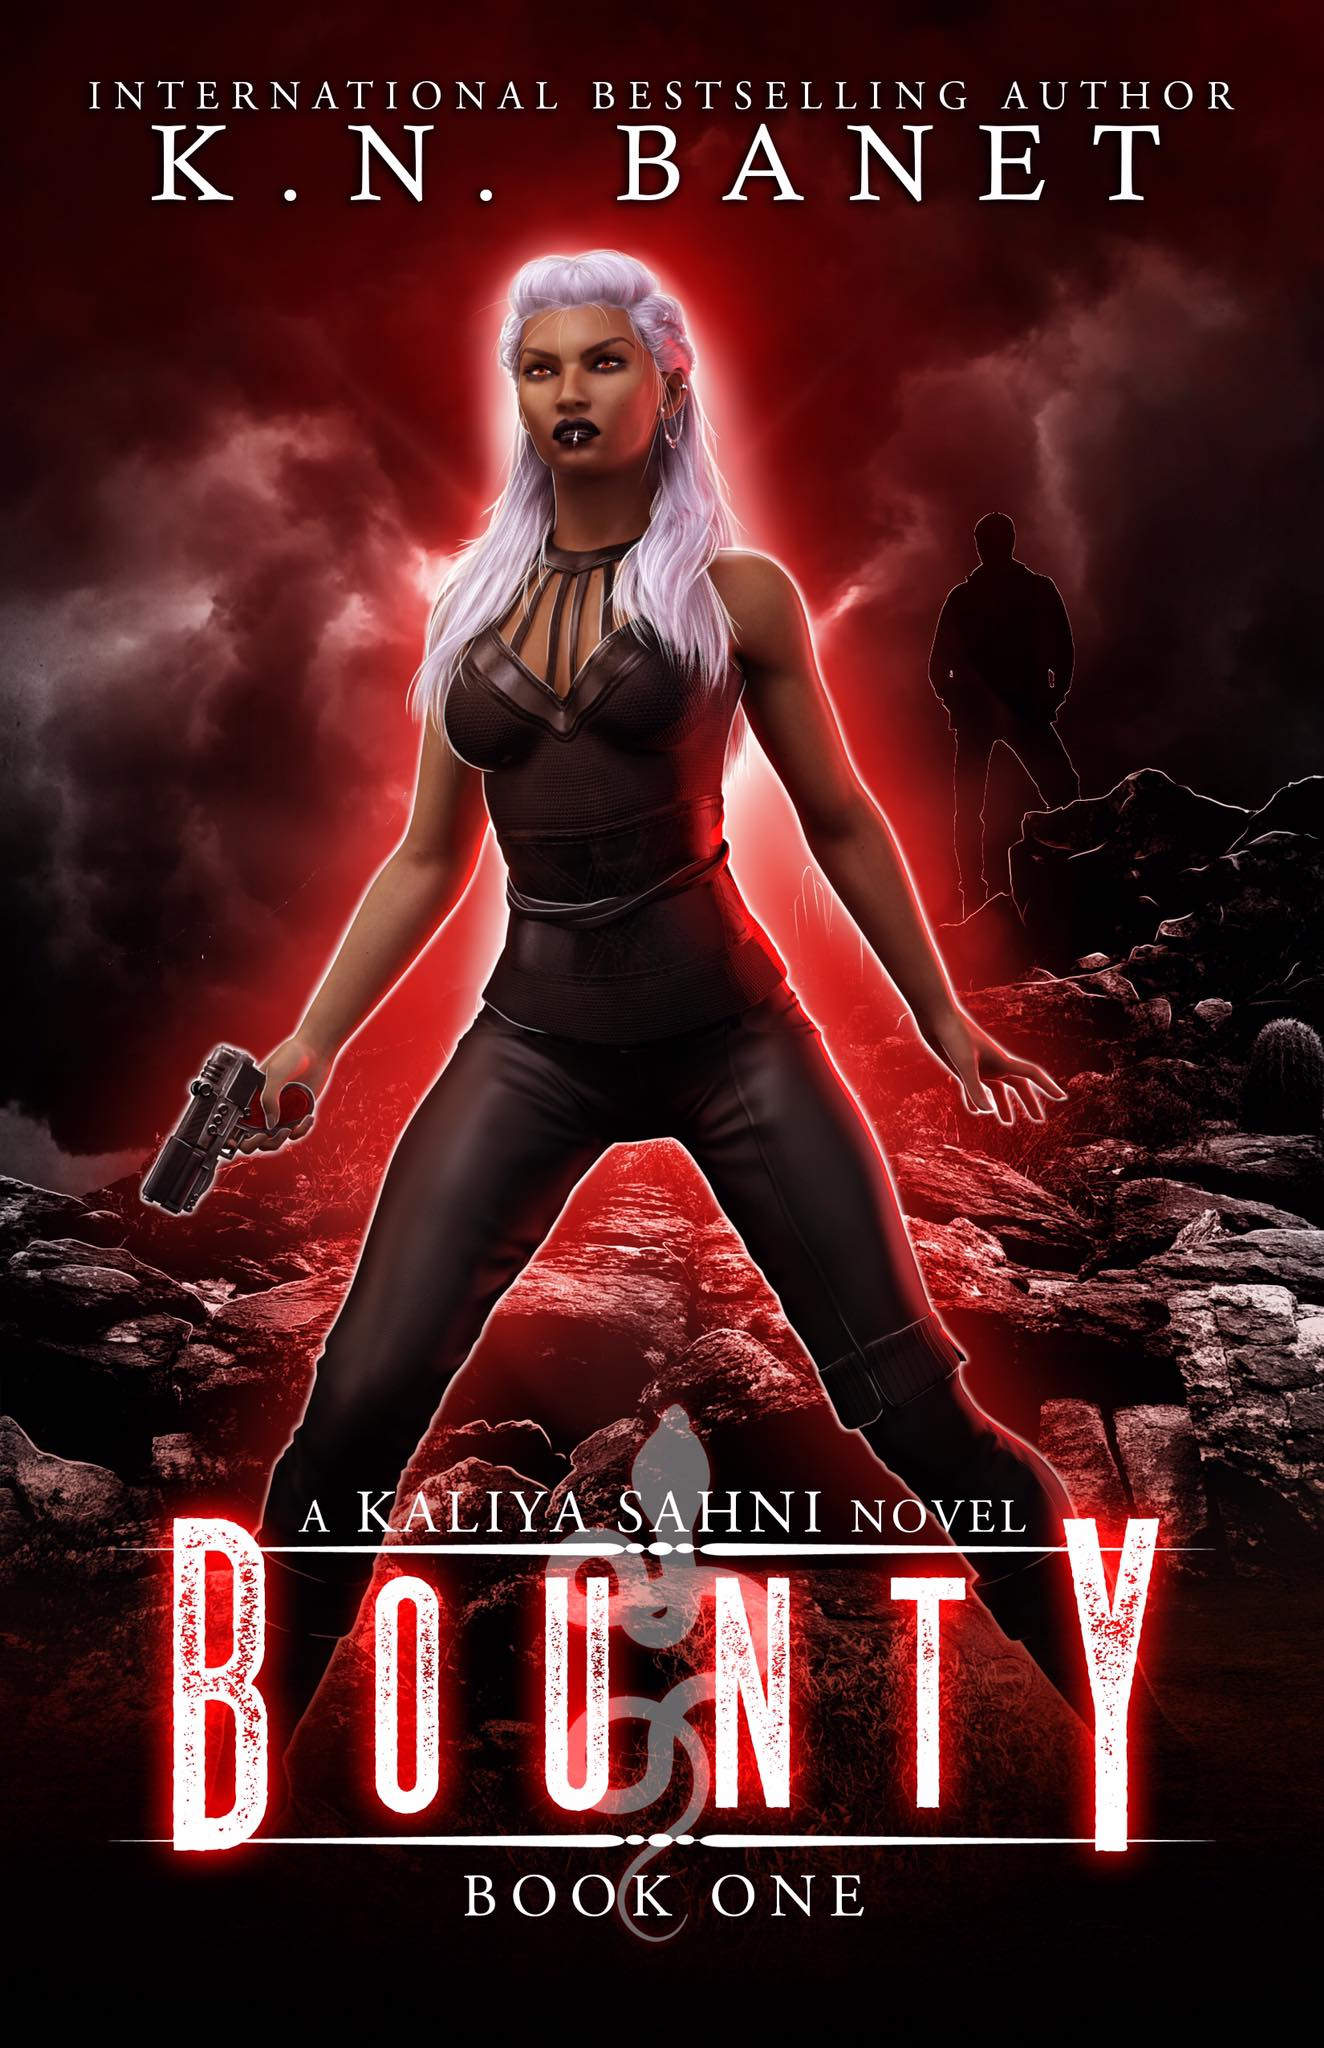 [PDF] [EPUB] Bounty (Kaliya Sahni #1) Download by Kristen Banet